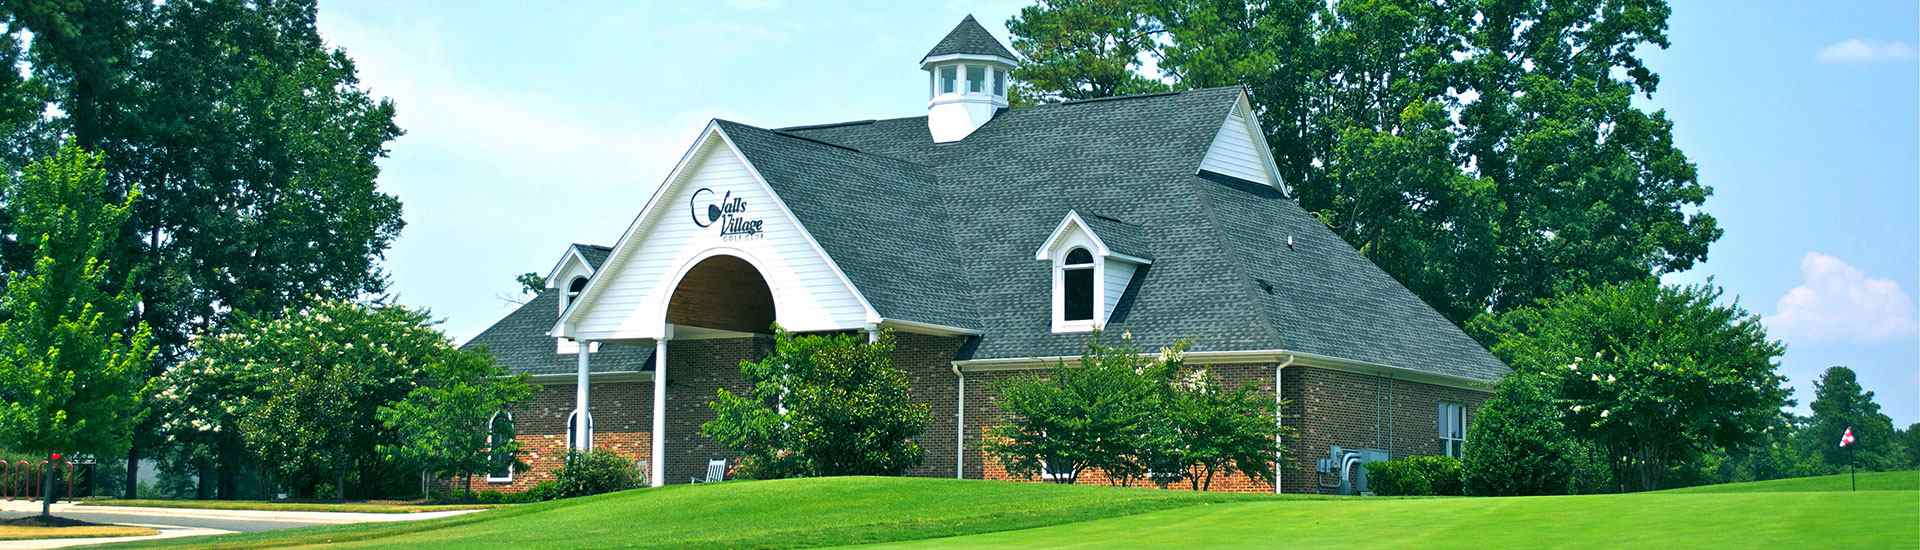 Public Golf Courses In Raleigh Durham And Chapel Hill